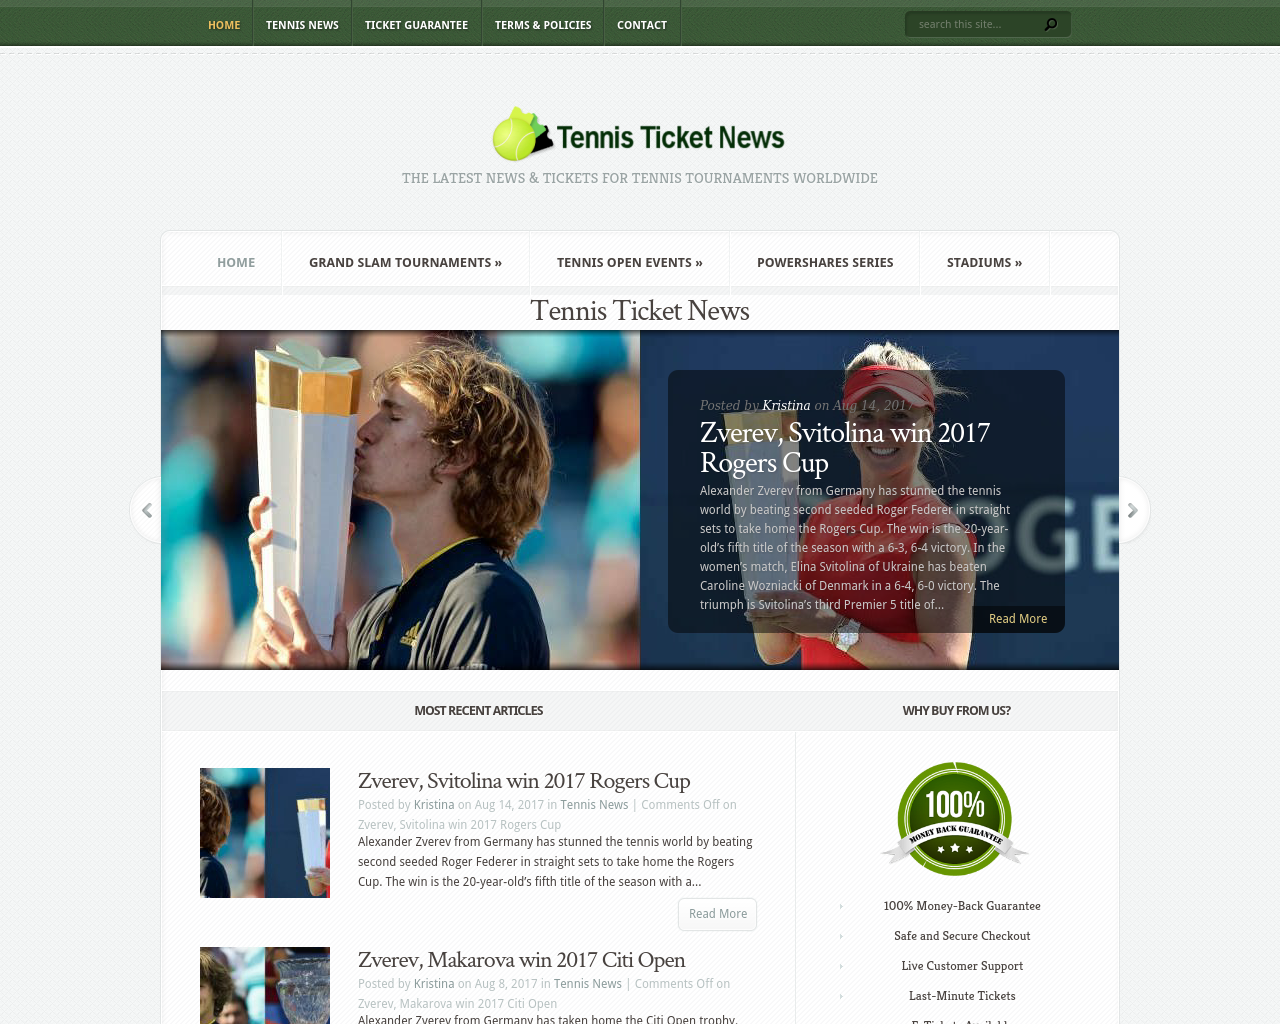 Tennis-Ticket-News-Advertising-Reviews-Pricing